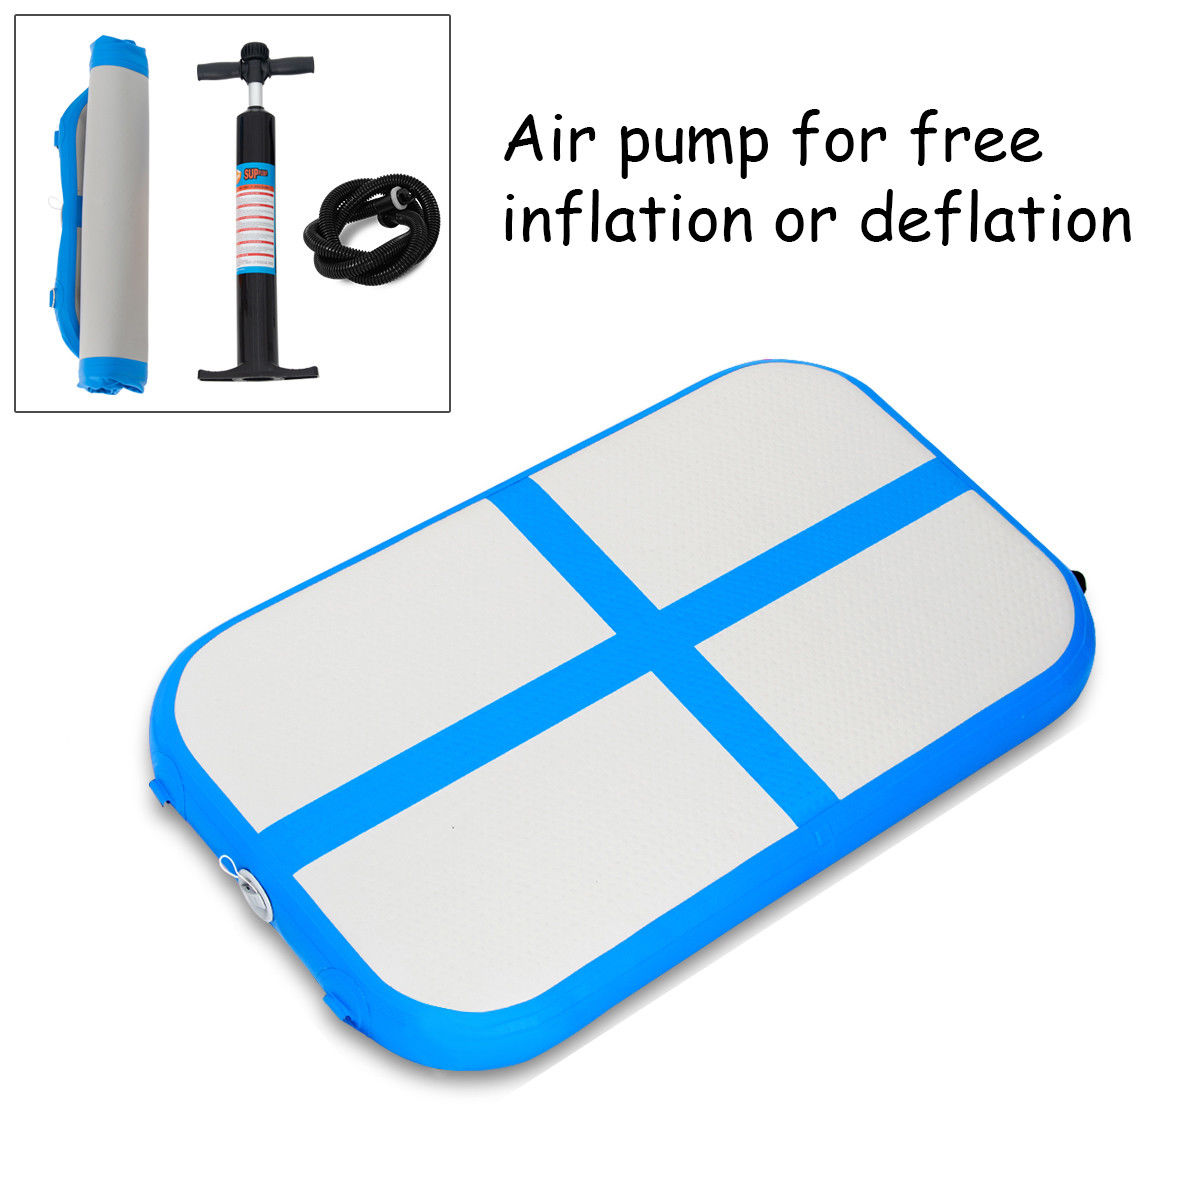 3.3' Inflatable Gymnastics Mat Air Track Floor Mat Water Buoyancy w/ Pump Blue - image 10 de 10